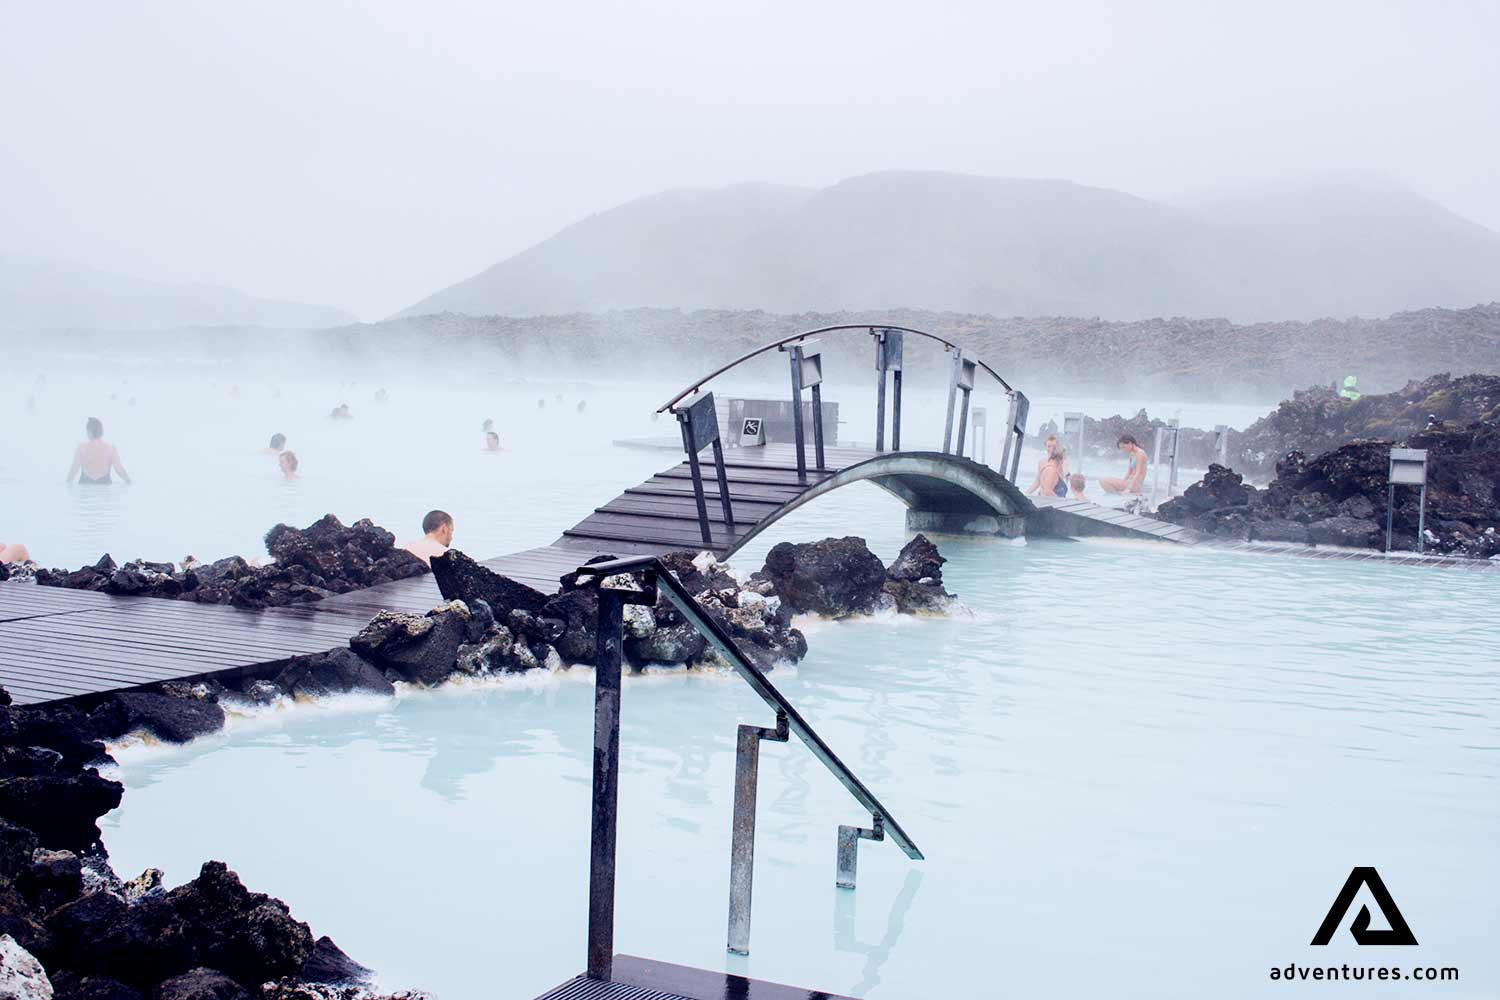 Blue lagoon iceland 2018 guide tours extreme iceland for Where is the blue lagoon located in iceland